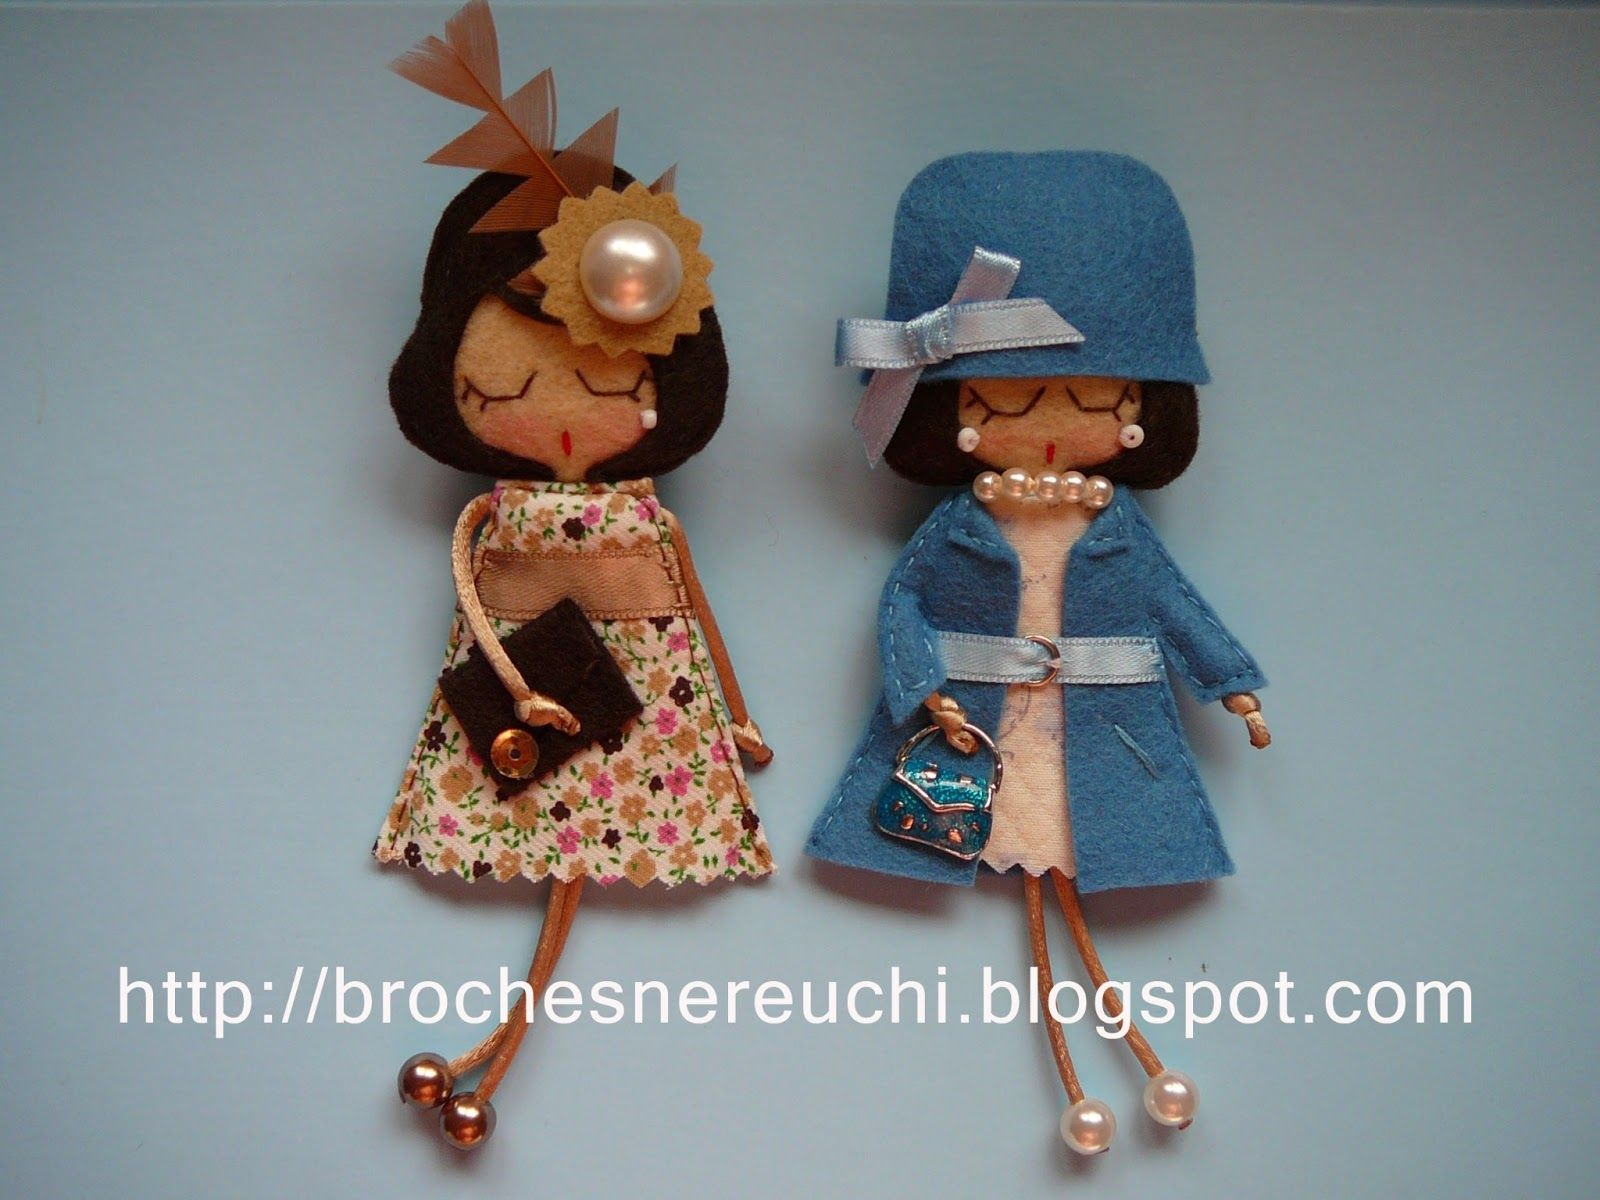 Broches nereuchi manualidades inteligentes pinterest - Broches de fieltro munecas ...